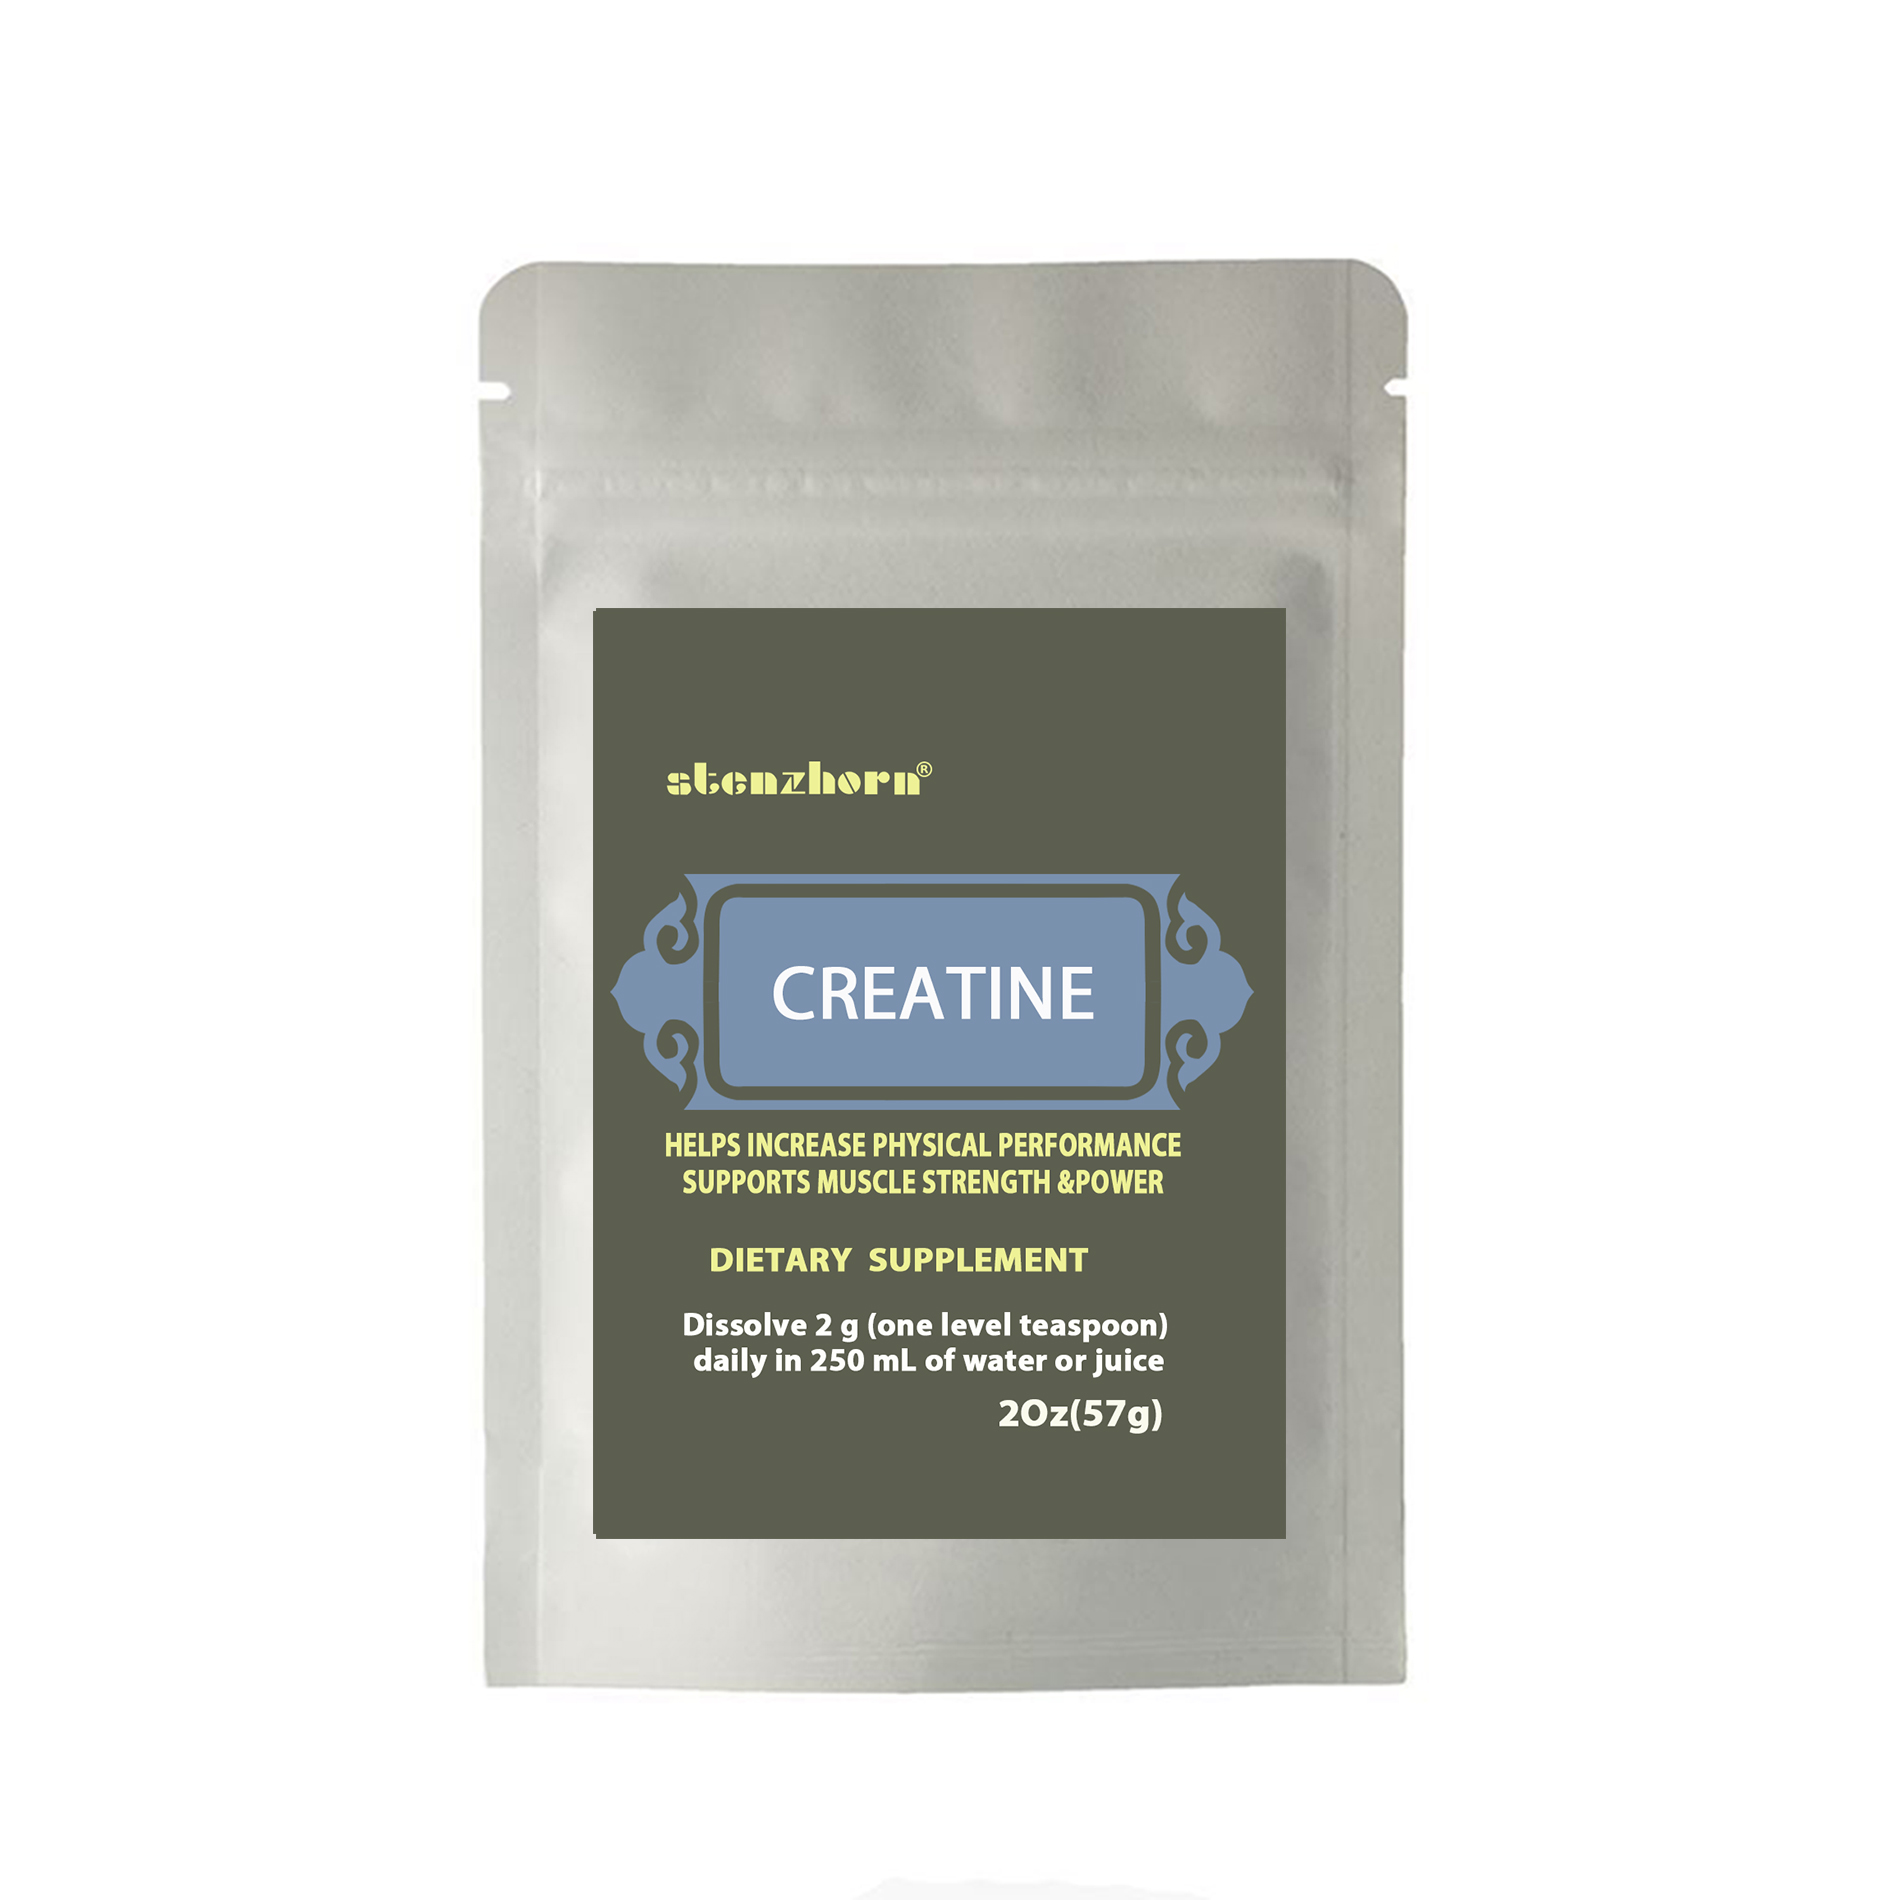 Creatine 2Oz   Creatine Helps Boost Energy  Creatine May Help Increase Body Mass And Size